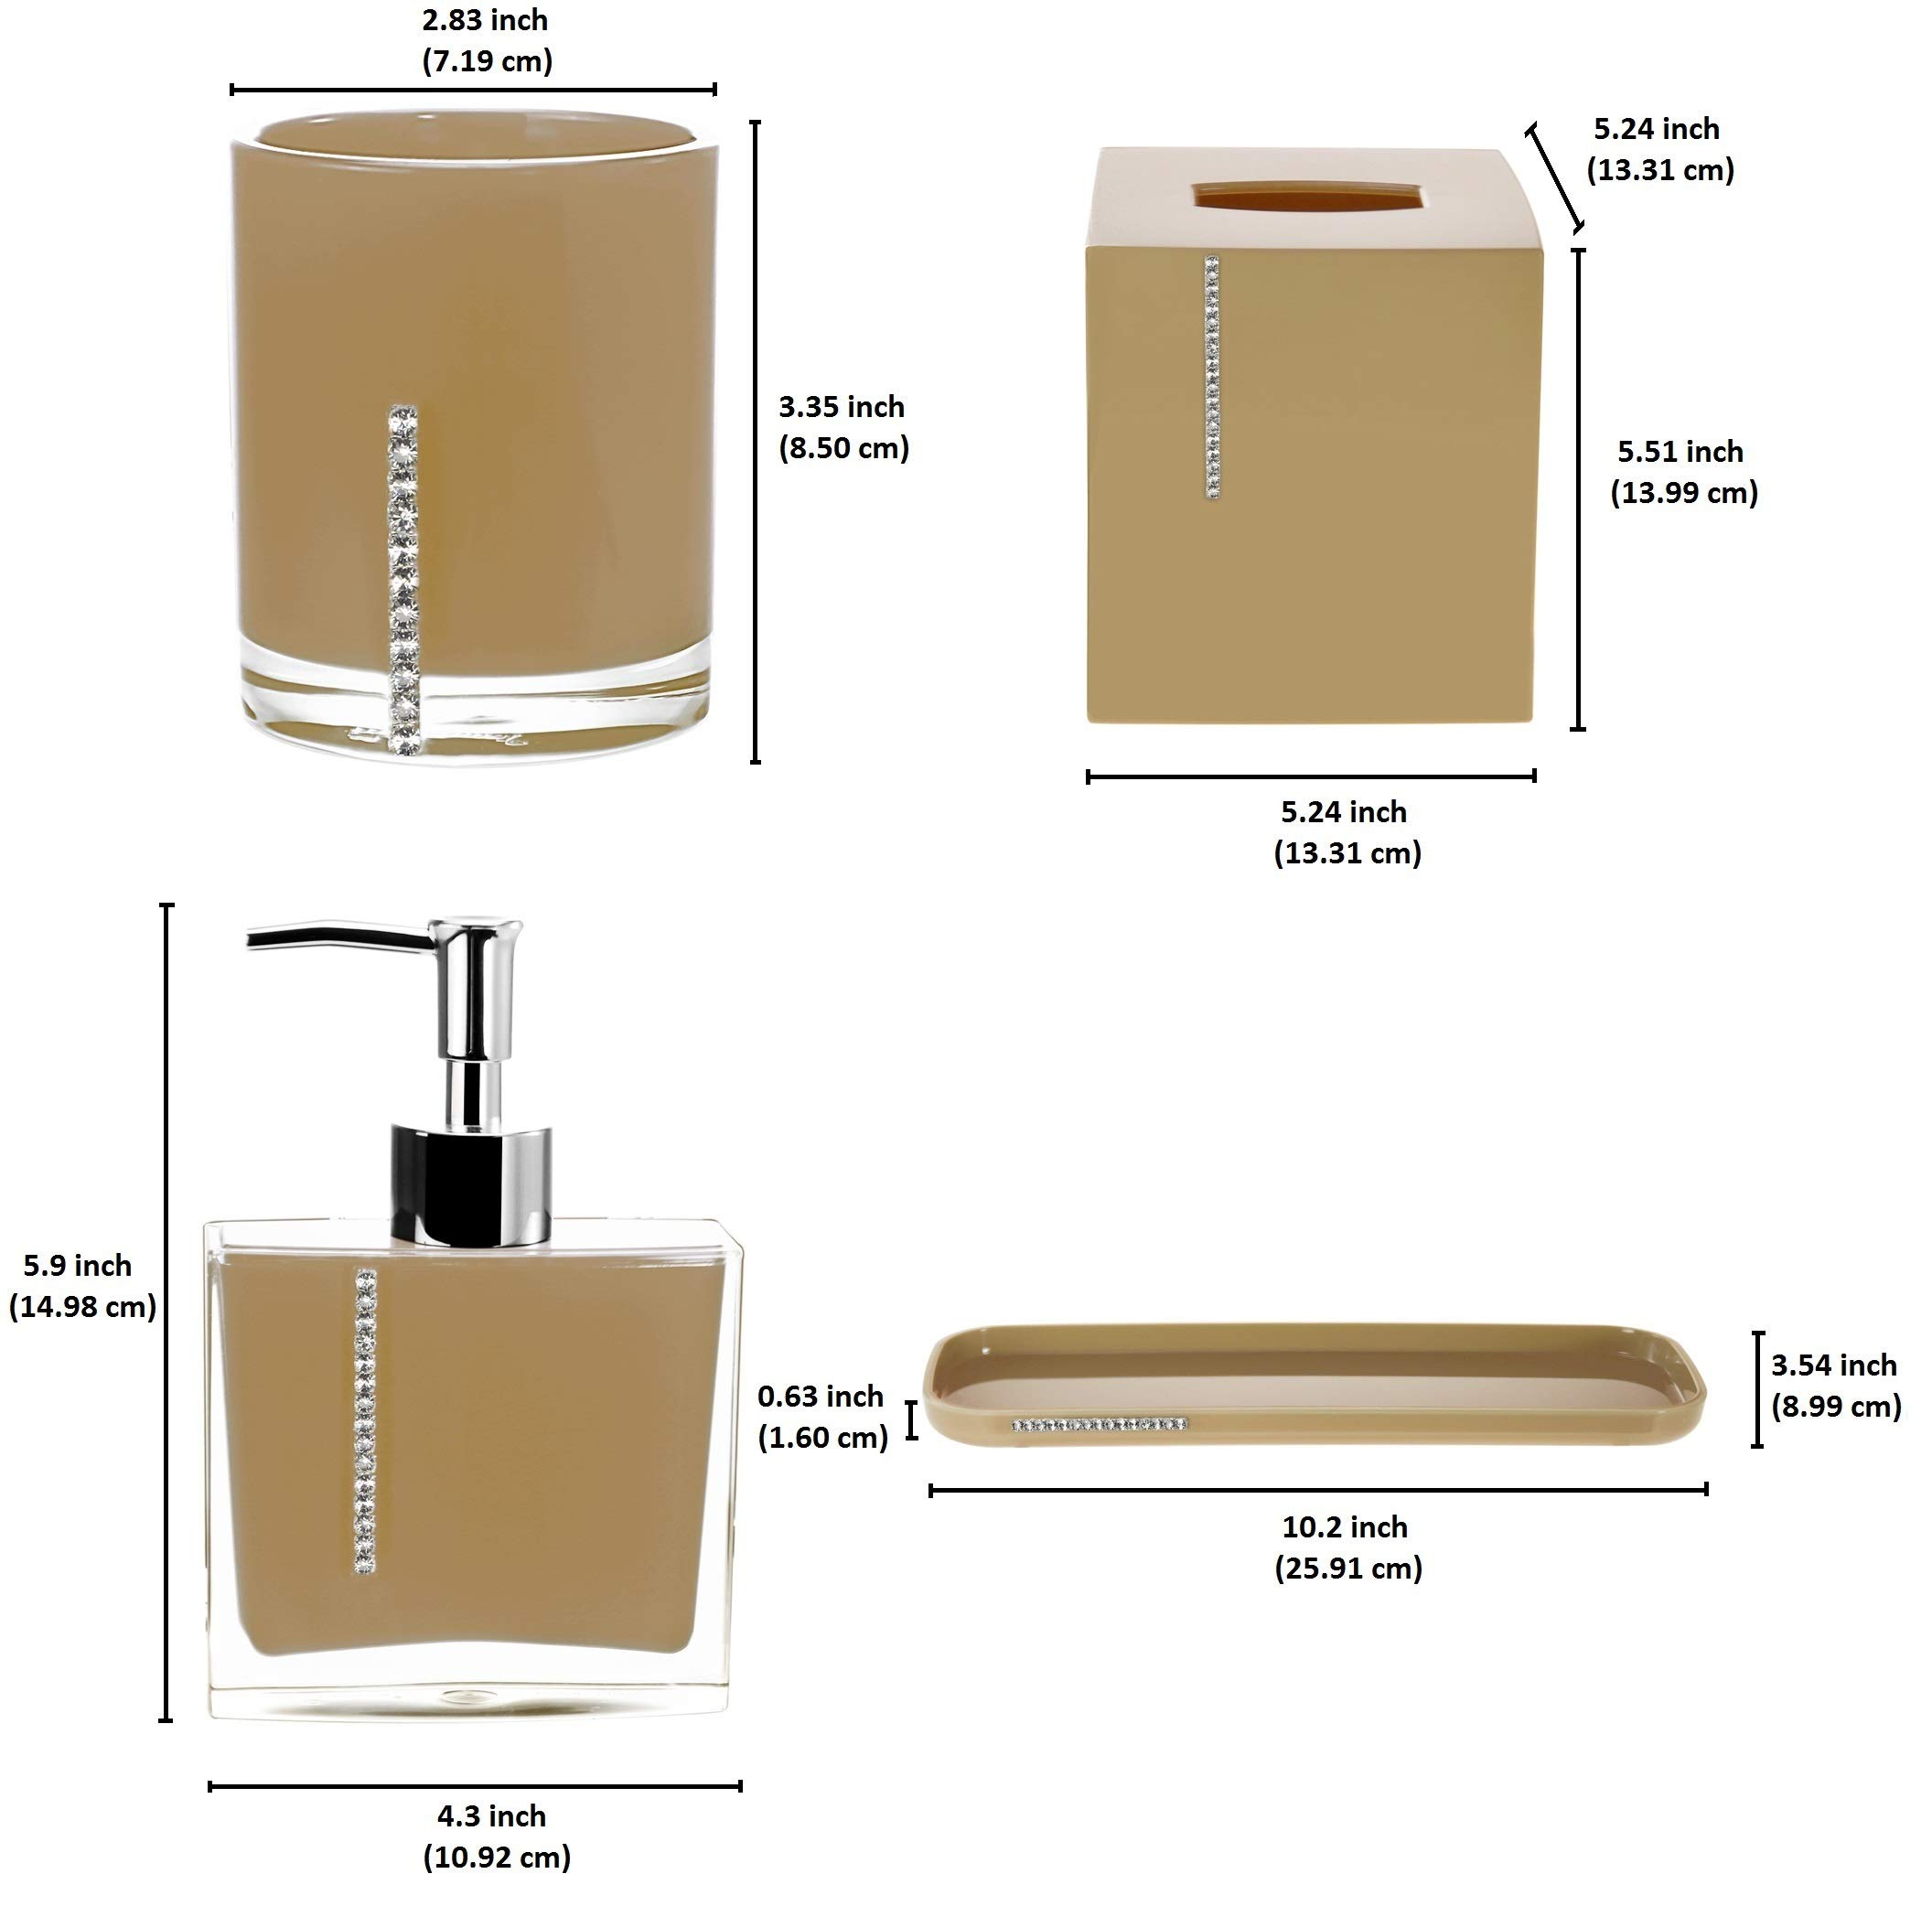 3 Pieces Toothbrush Holder Mdesign Bath Accessory Set Polished Stainless Steel Metrodecor Soap Dispenser Pump Tissue Box Cover Bathroom Accessory Sets Bathroom Accessories